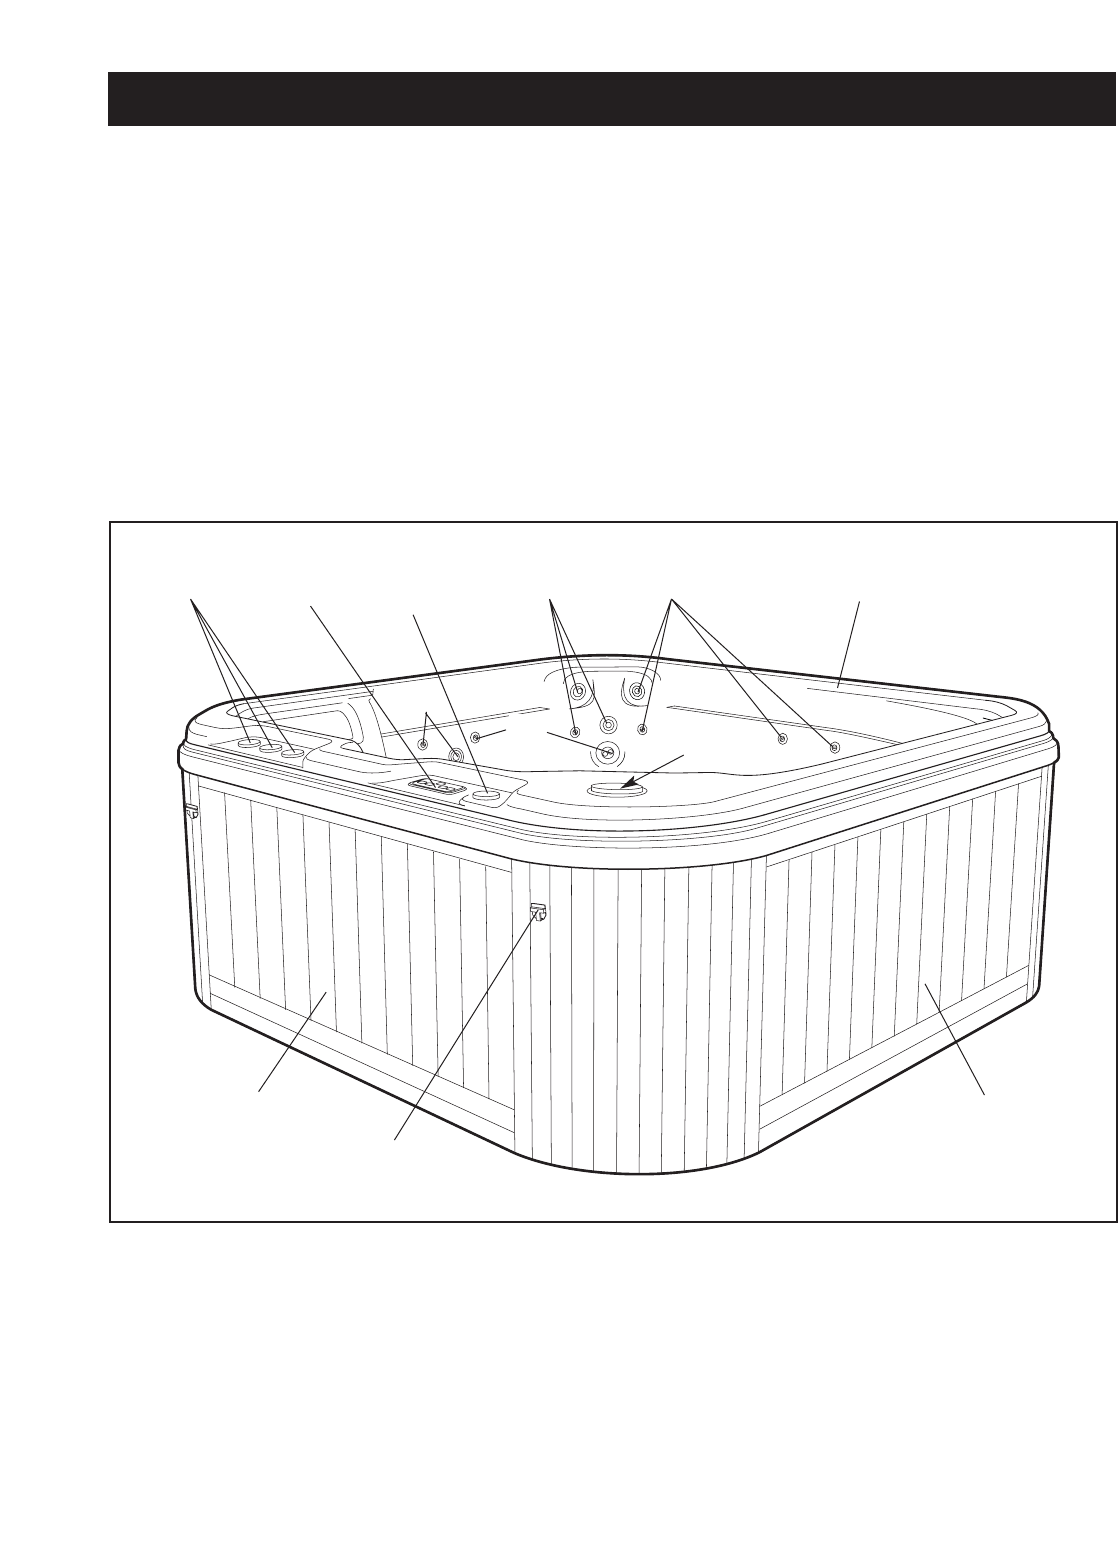 Page 6 of Image Hot Tub IMSG73920 User Guide